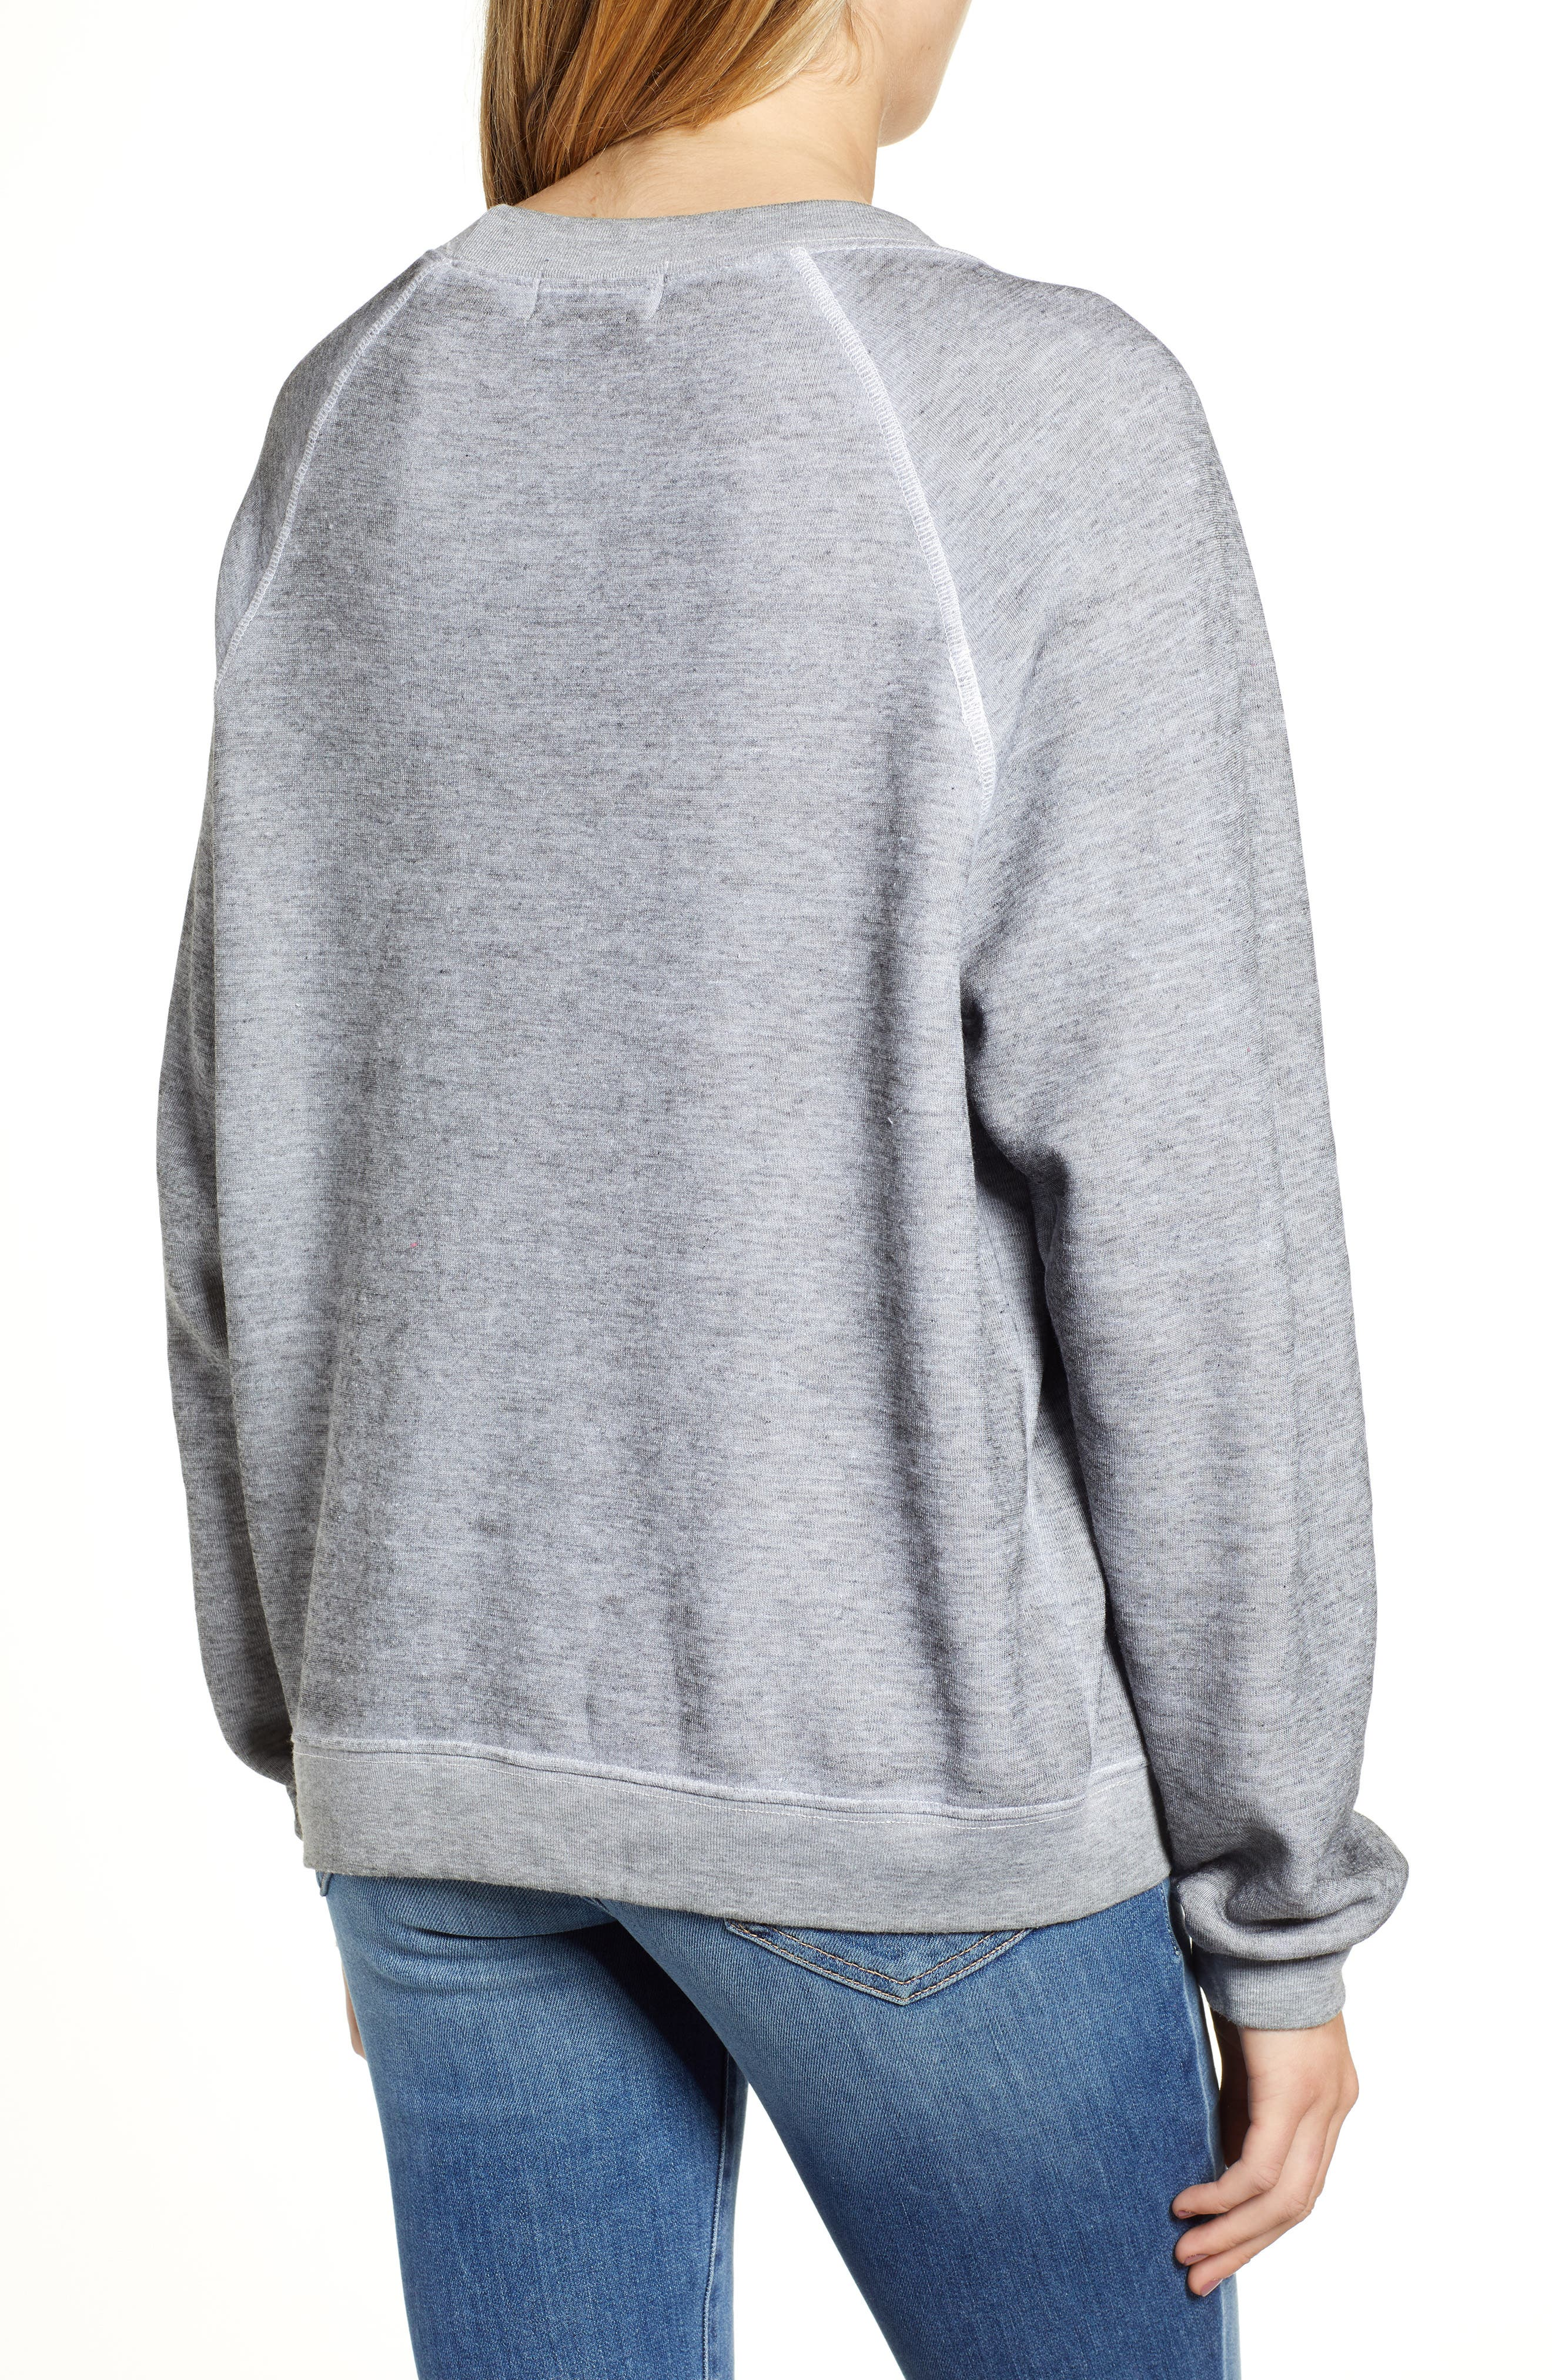 Pizzatarian Sommers Sweatshirt,                             Alternate thumbnail 2, color,                             020